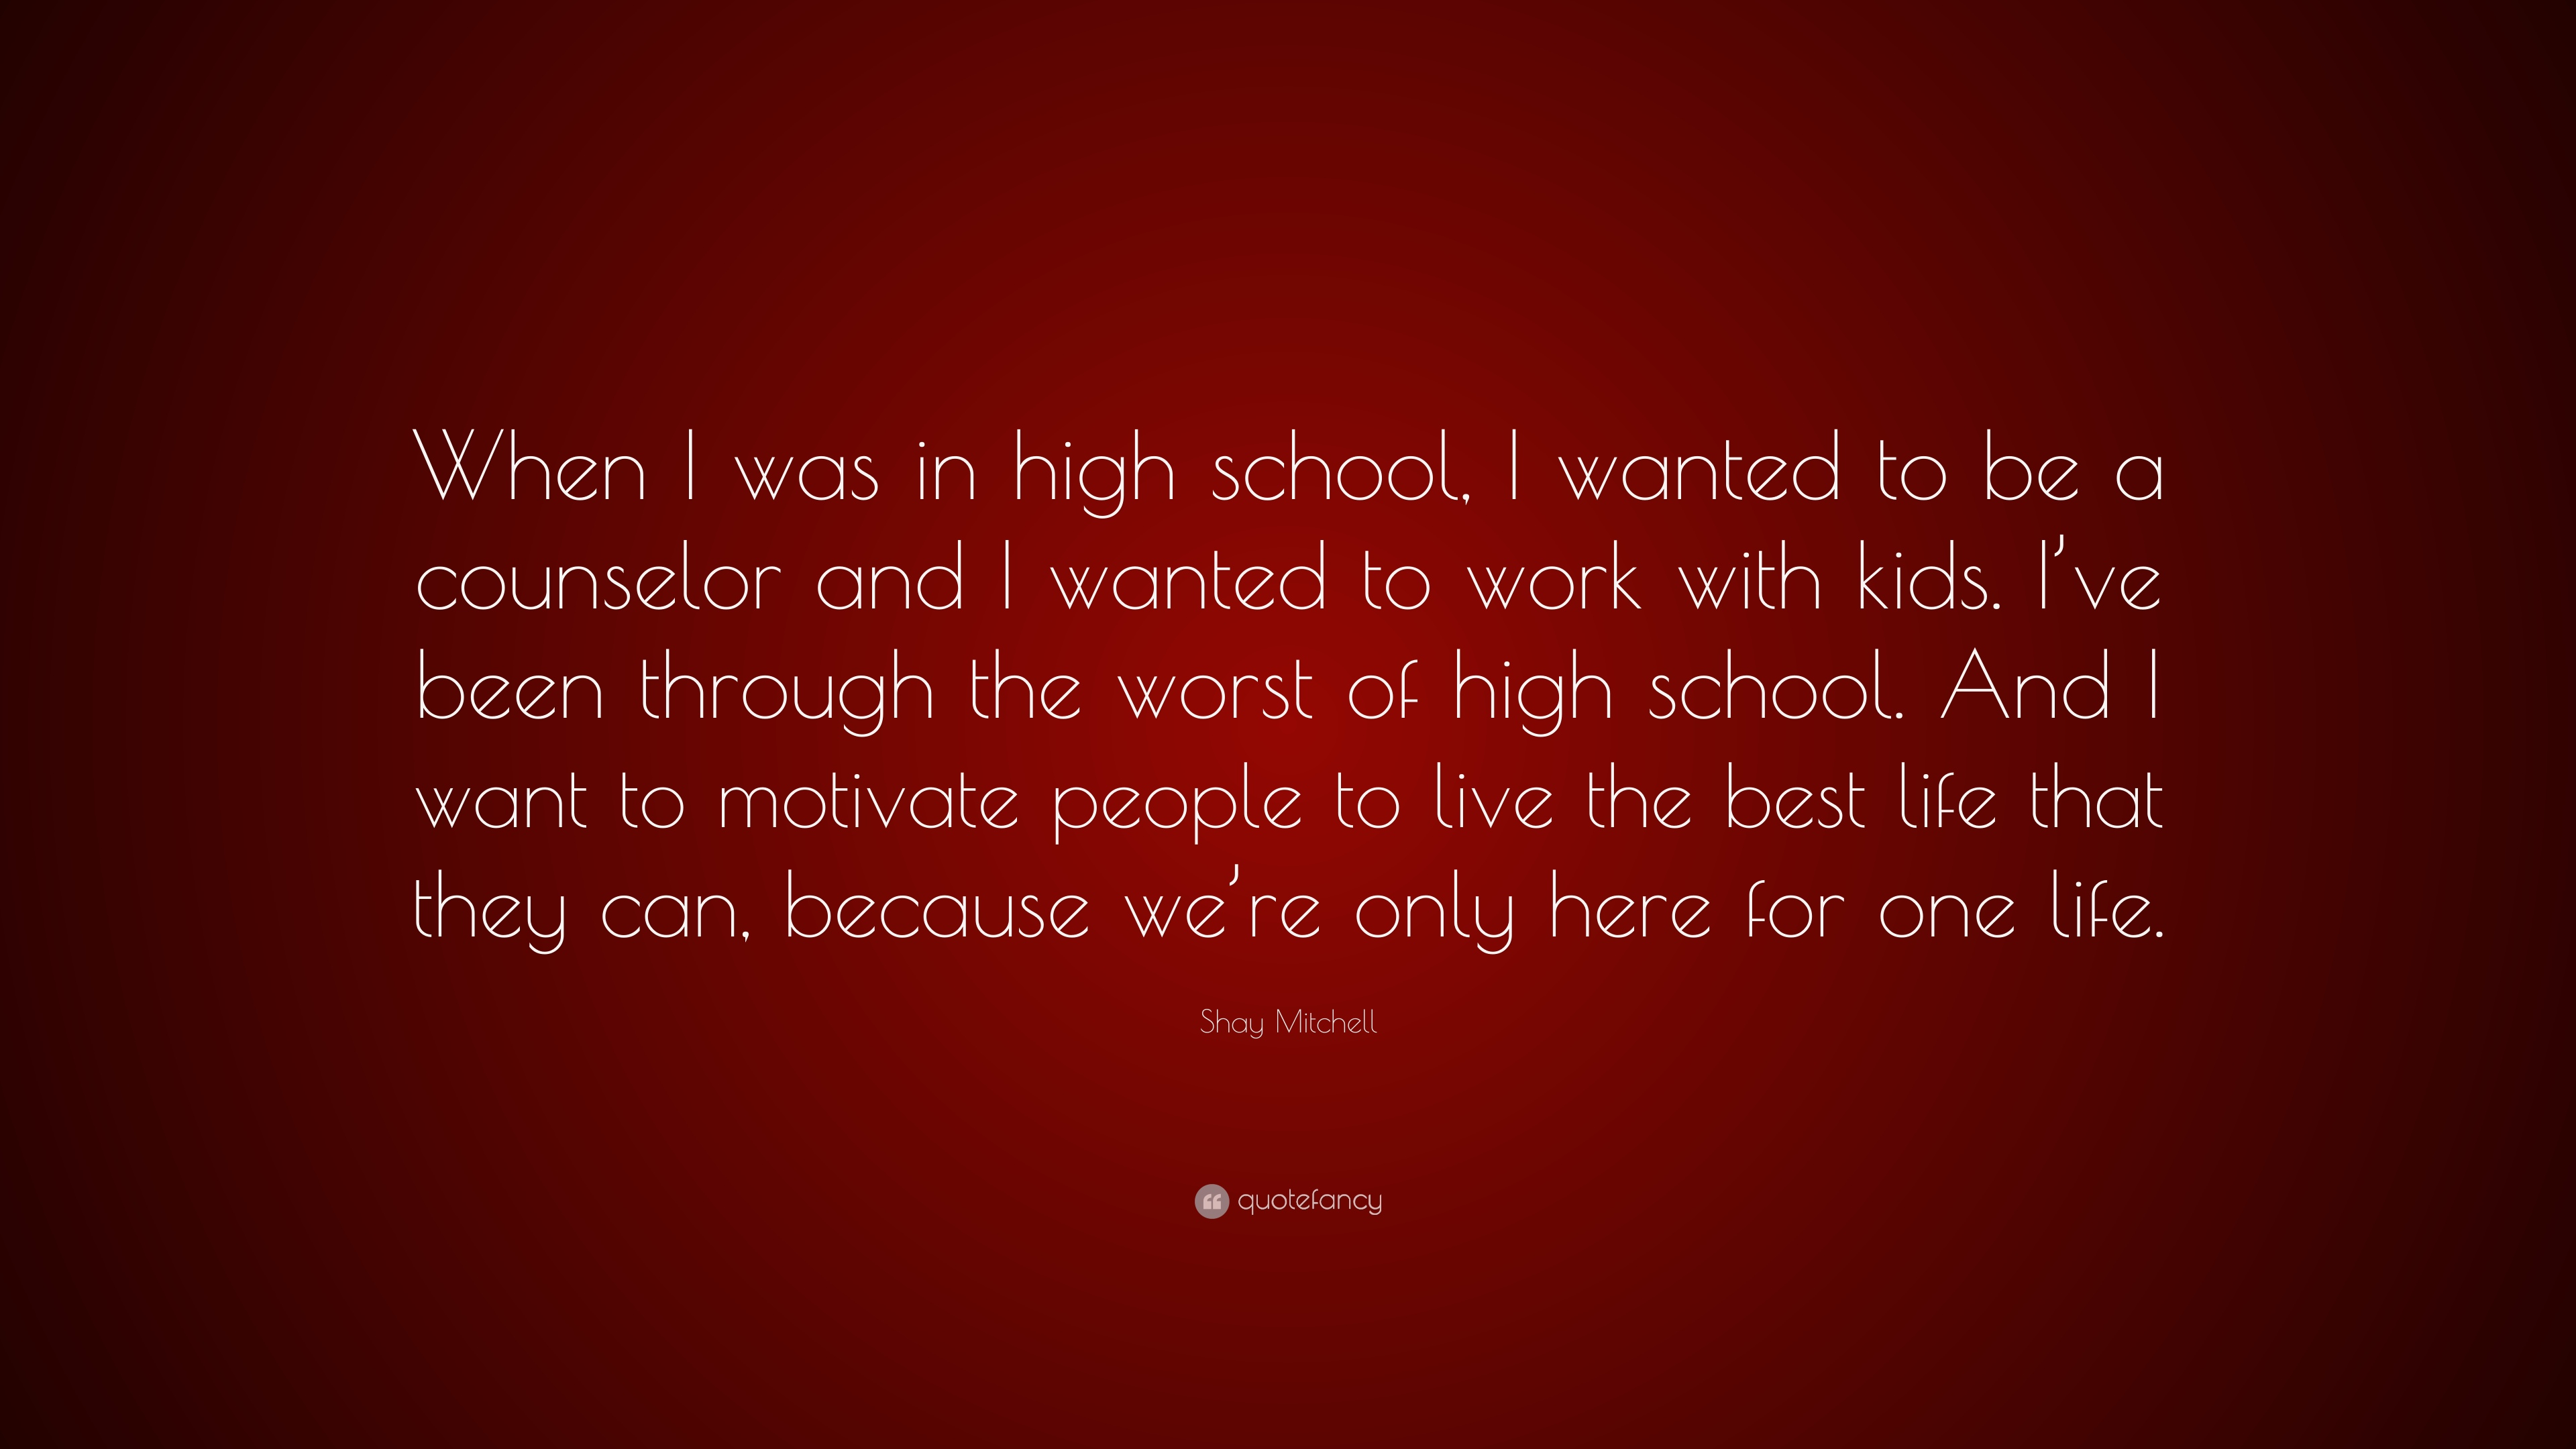 Shay Mitchell Quote When I Was In High School I Wanted To Be A